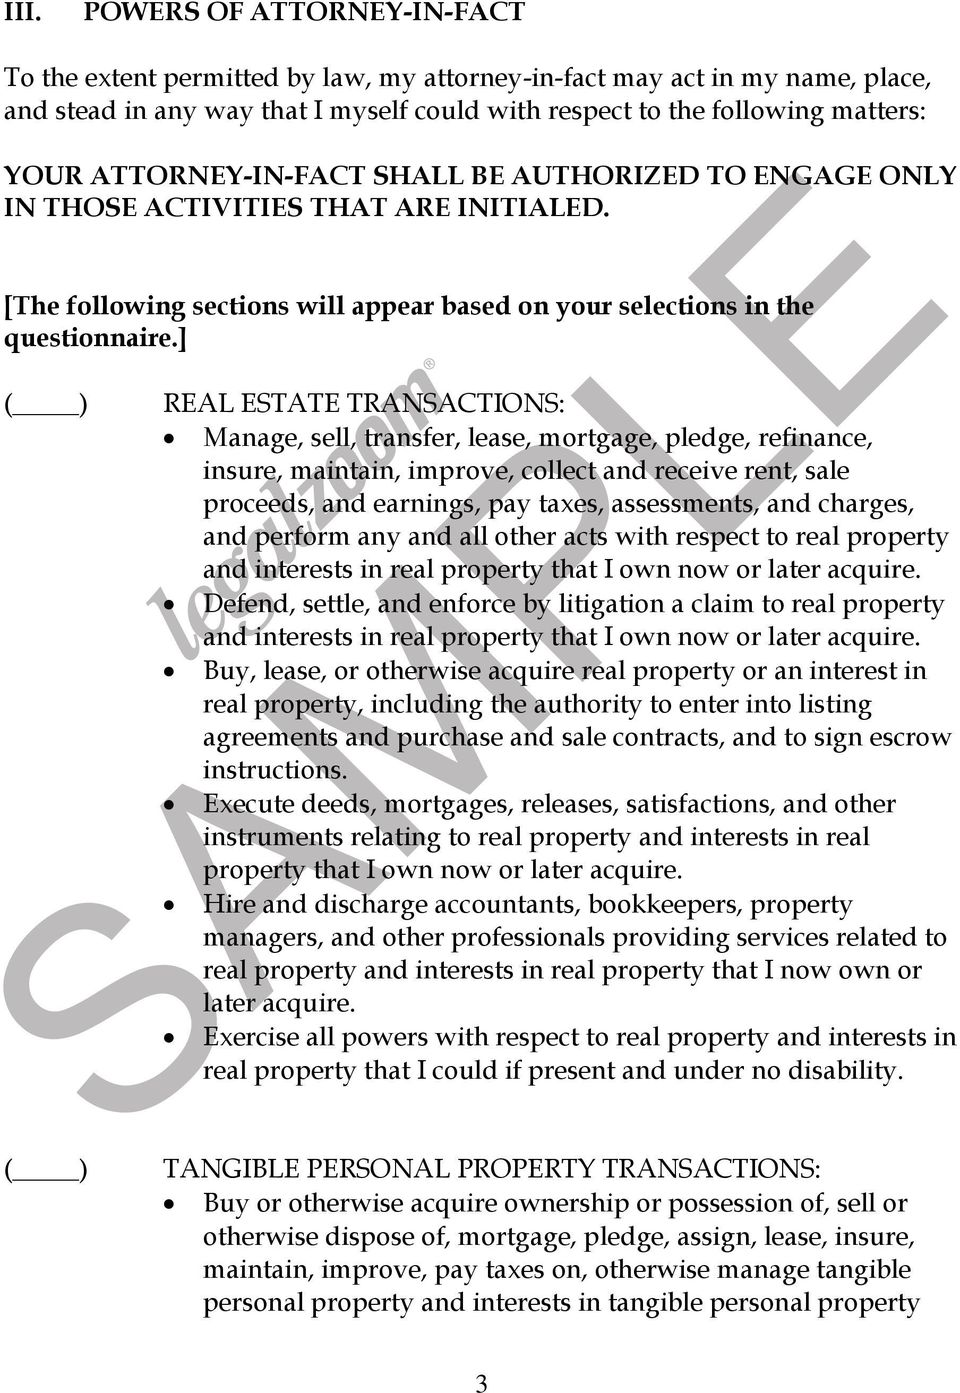 ] REAL ESTATE TRANSACTIONS: Manage, sell, transfer, lease, mortgage, pledge, refinance, insure, maintain, improve, collect and receive rent, sale proceeds, and earnings, pay taxes, assessments, and